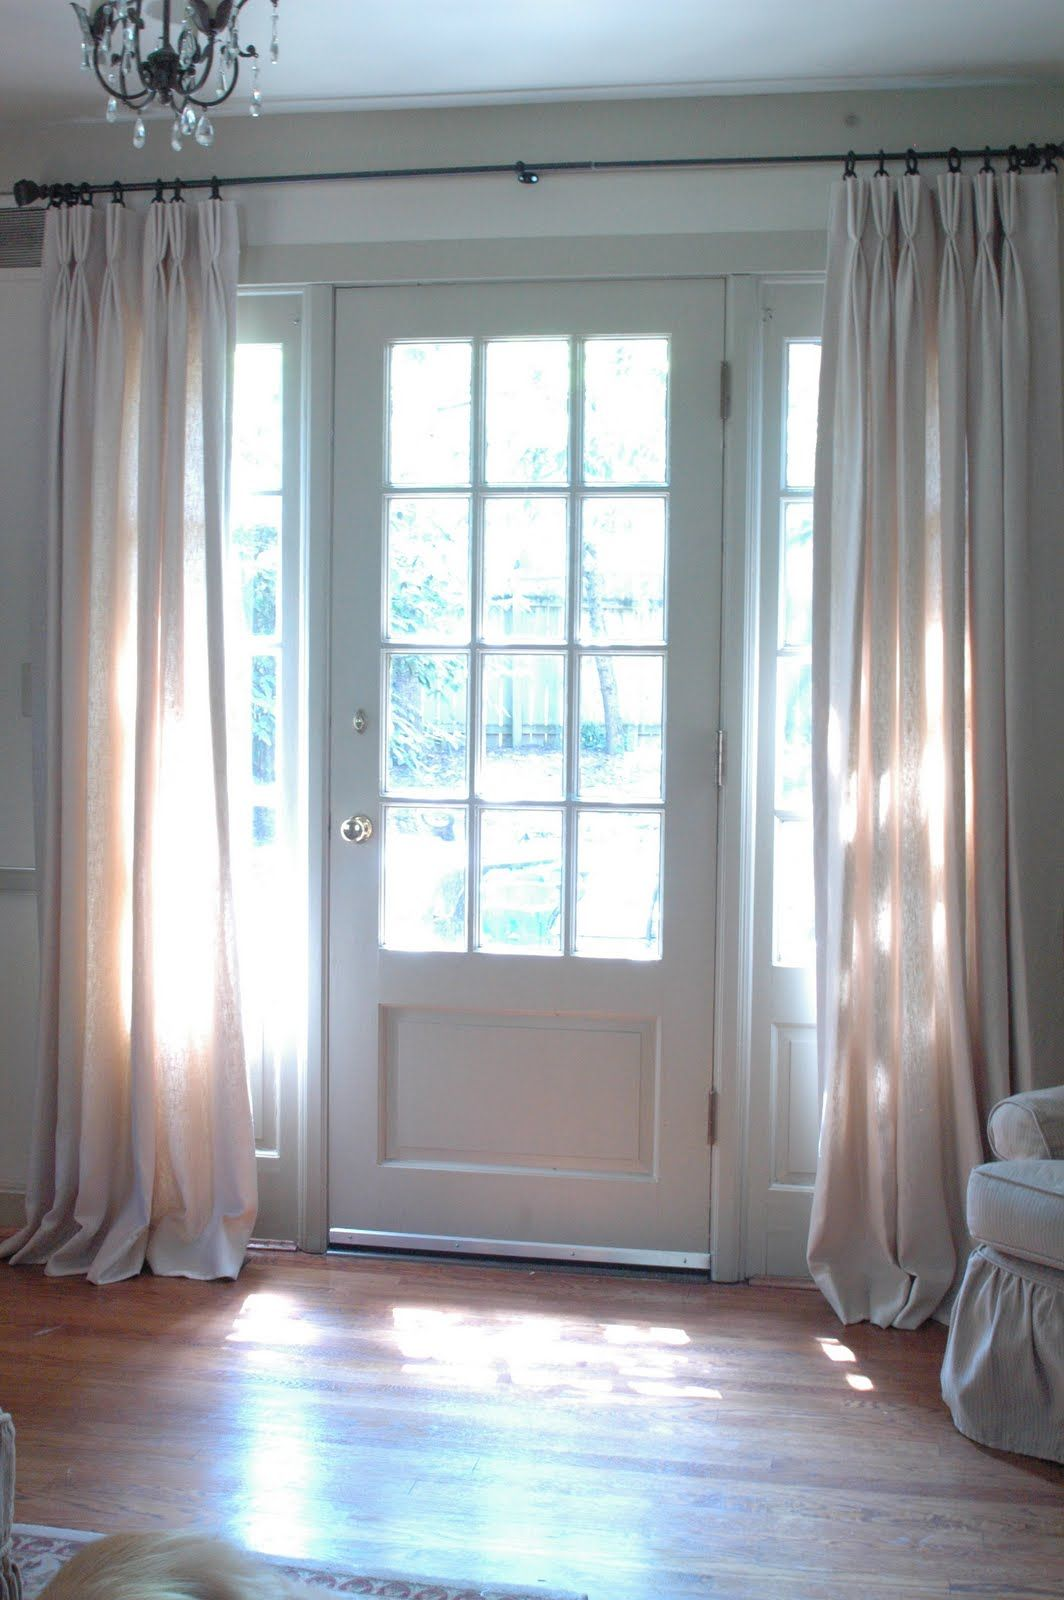 Le Meilleur More Hanging Curtains By The Front Door Only If Curtains Ce Mois Ci